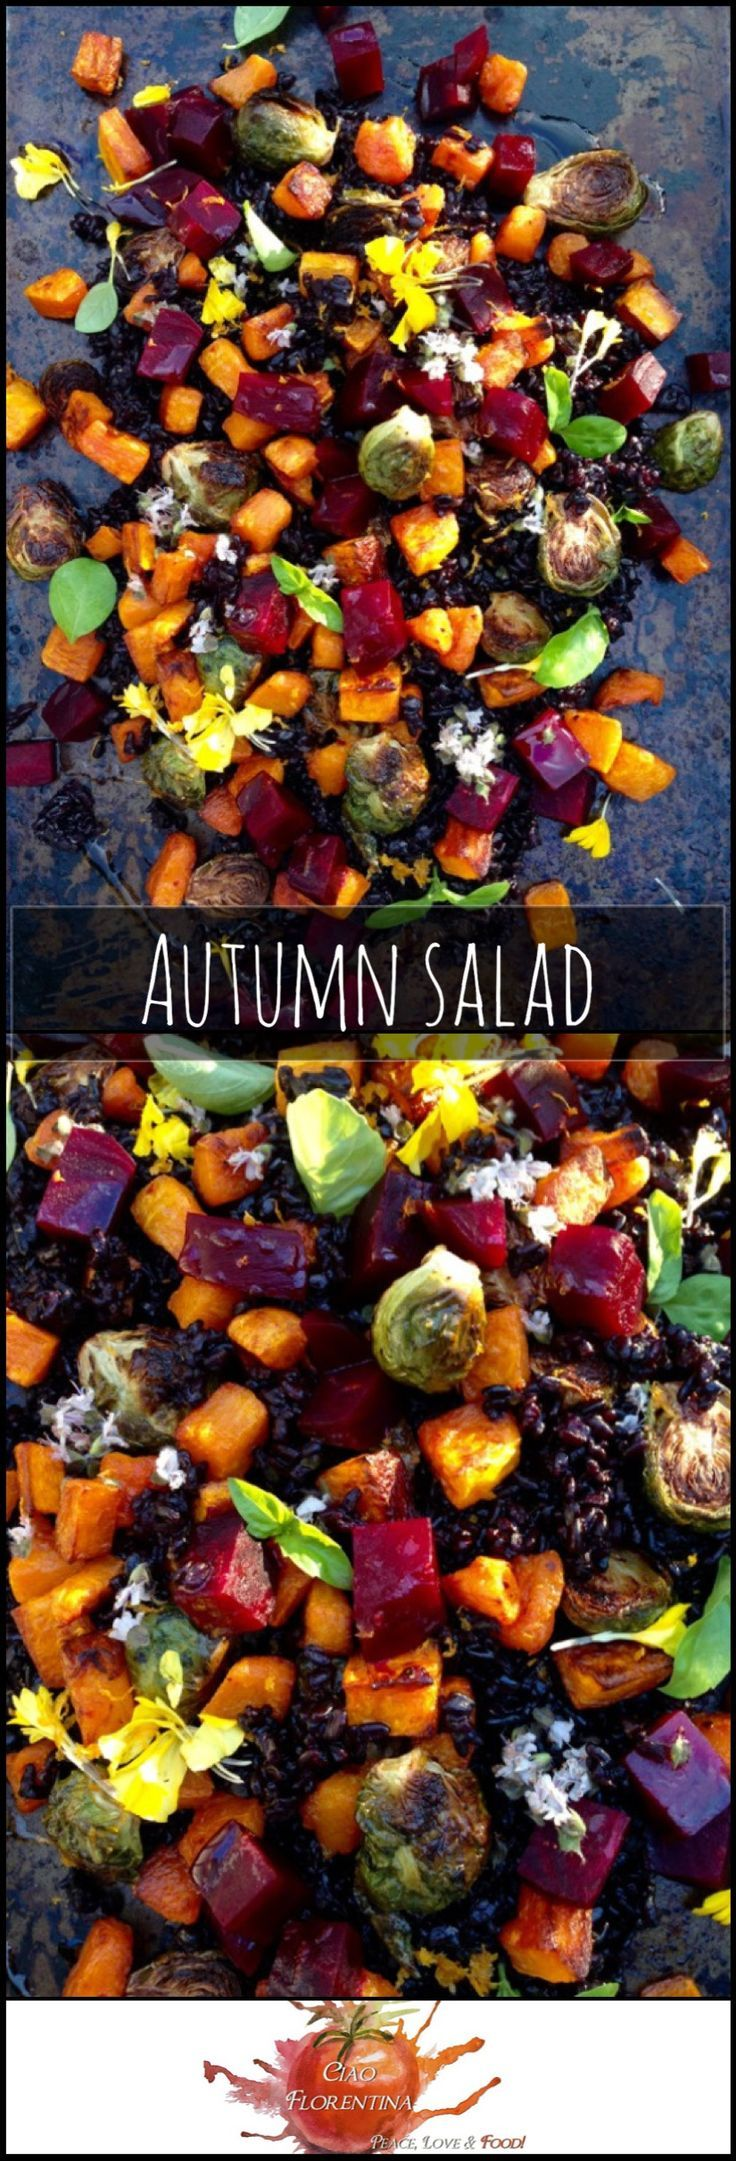 Autumn Salad Recipe of Roasted Red Beets, Butternut Squash & Roast Brussels Sprouts | http://www.CiaoFlorentina.com